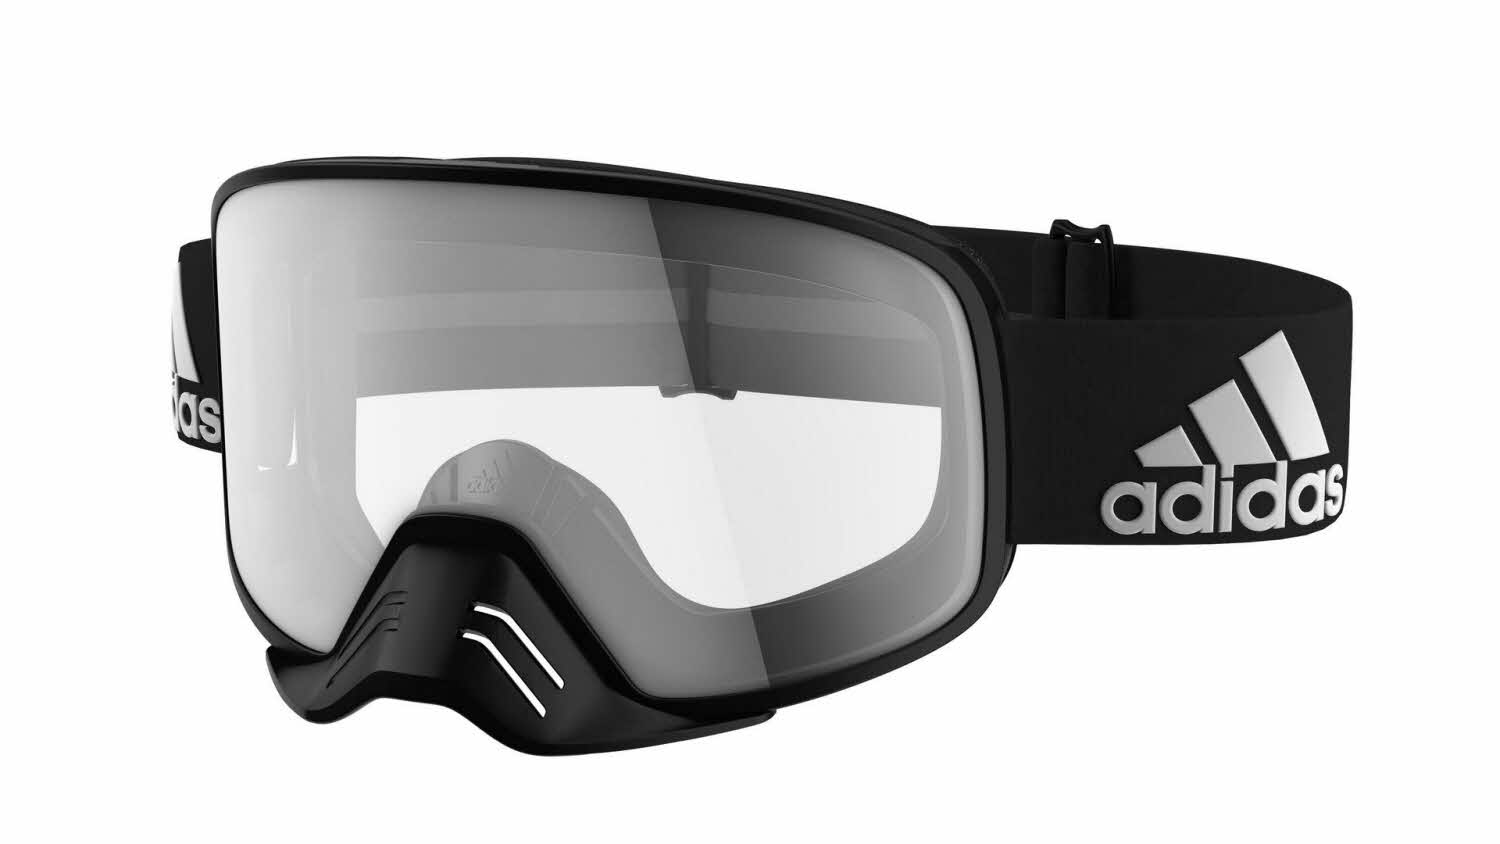 ac97aa722d2 Adidas Goggles AD84 backland Dirt Sunglasses